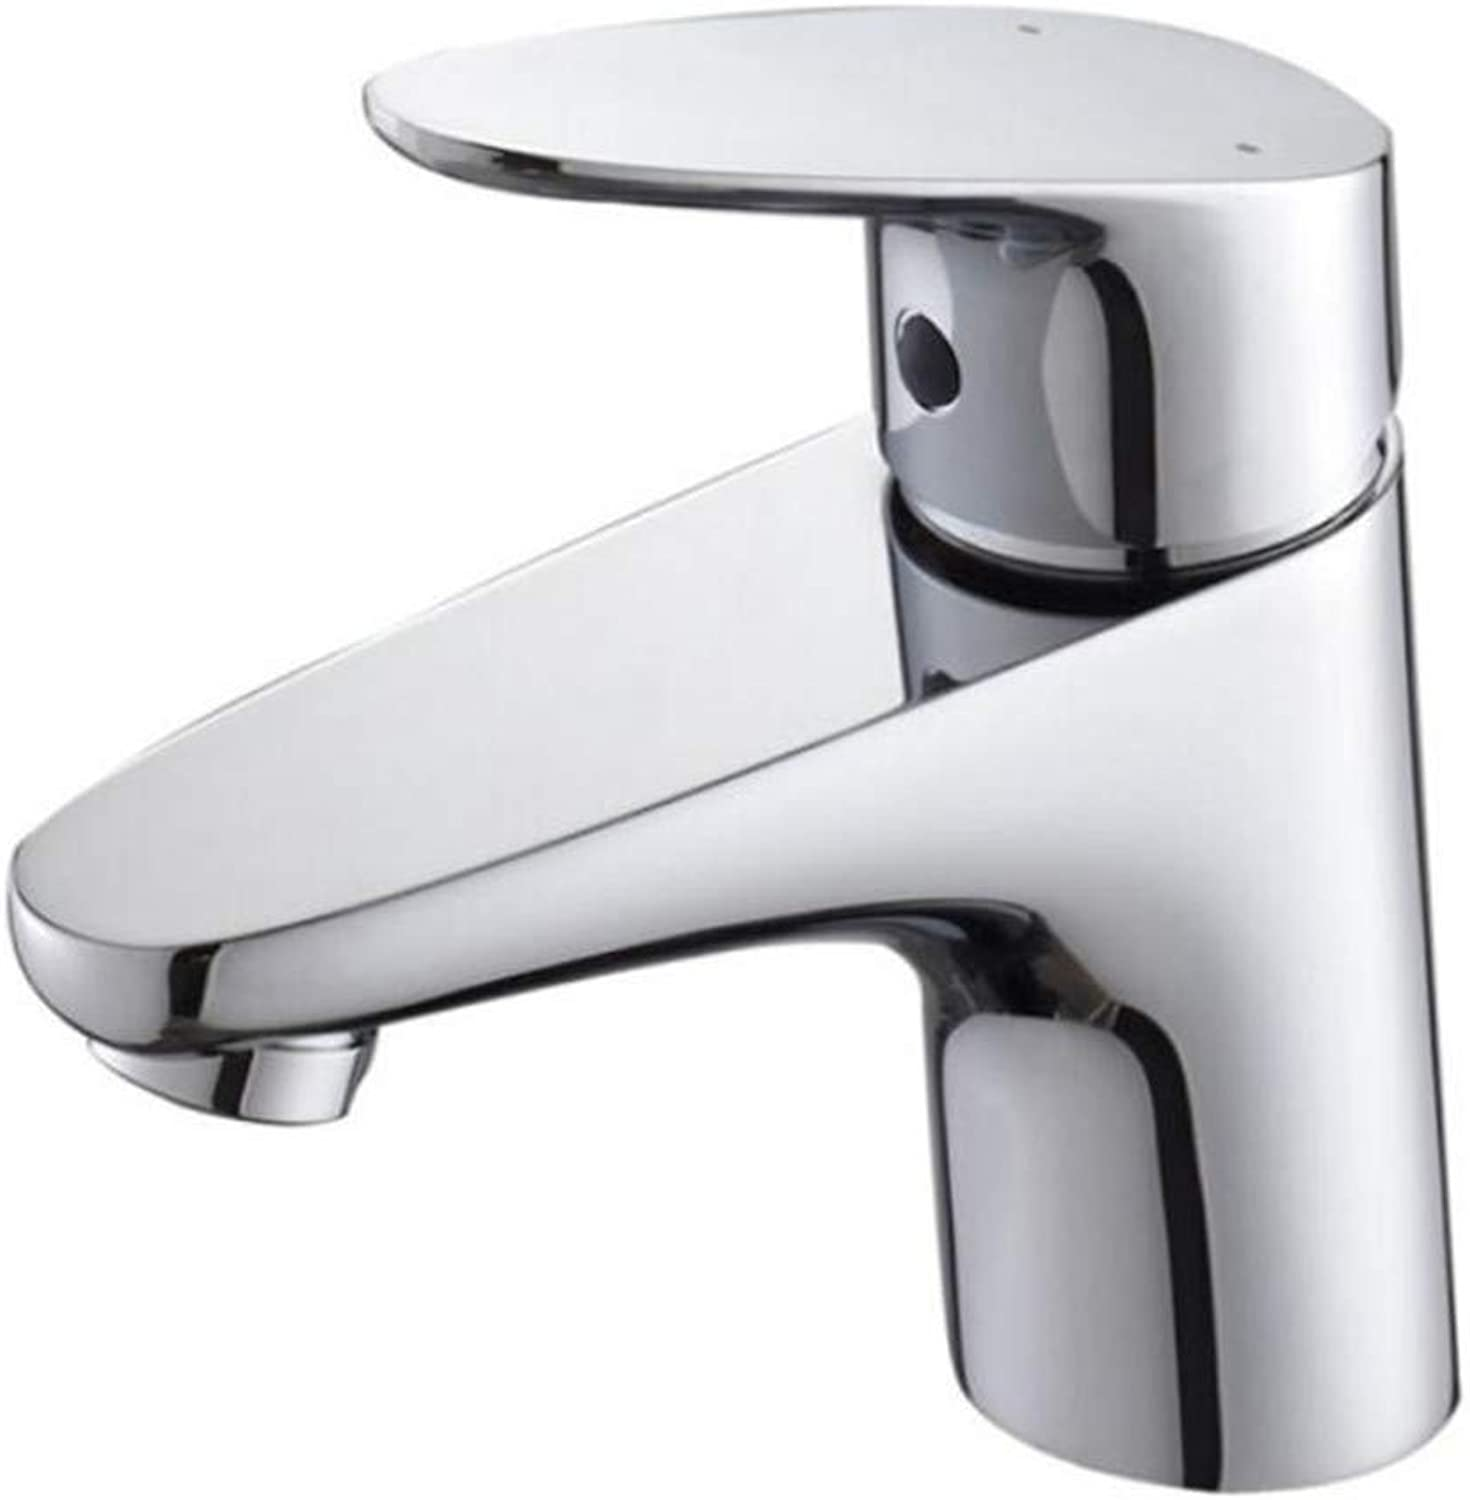 Faucet Waste Mono Spoutcopper Single Hole Hot and Cold Water Basin Mixer Bathroom Faucet